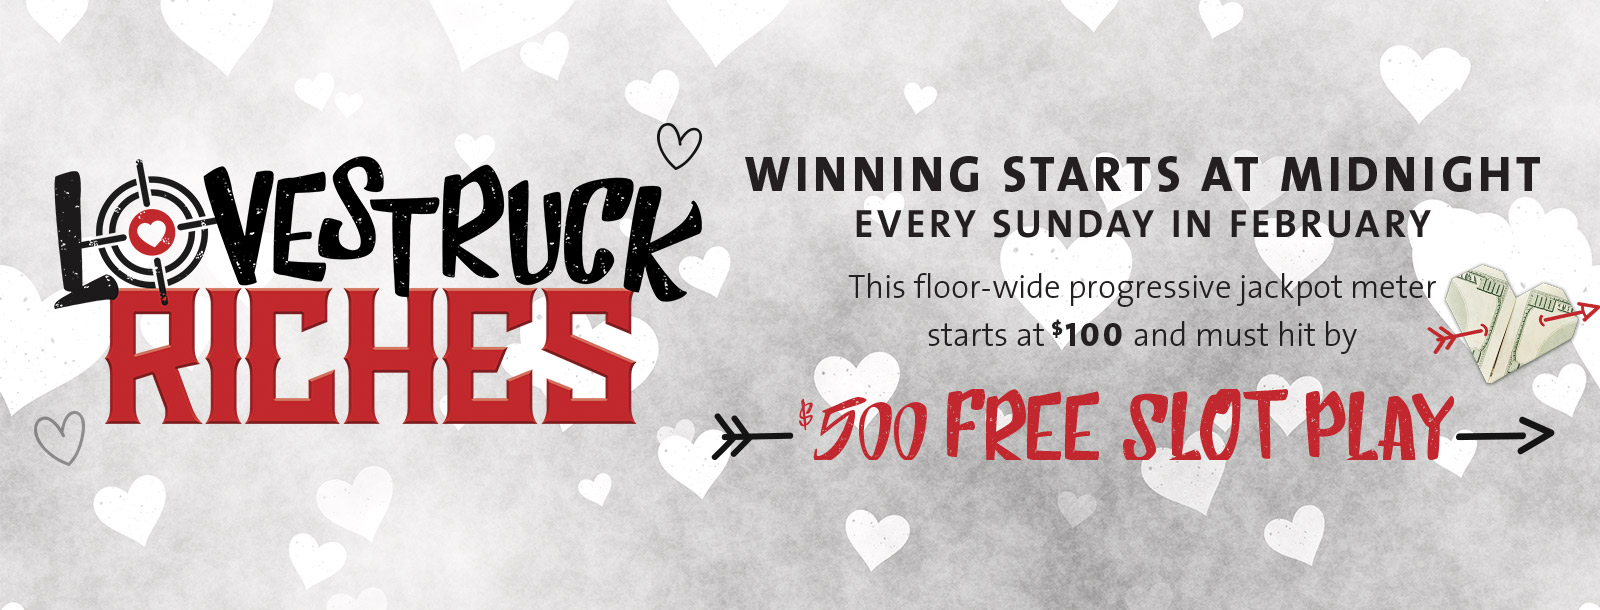 lovestruck riches sioux city casino promotion